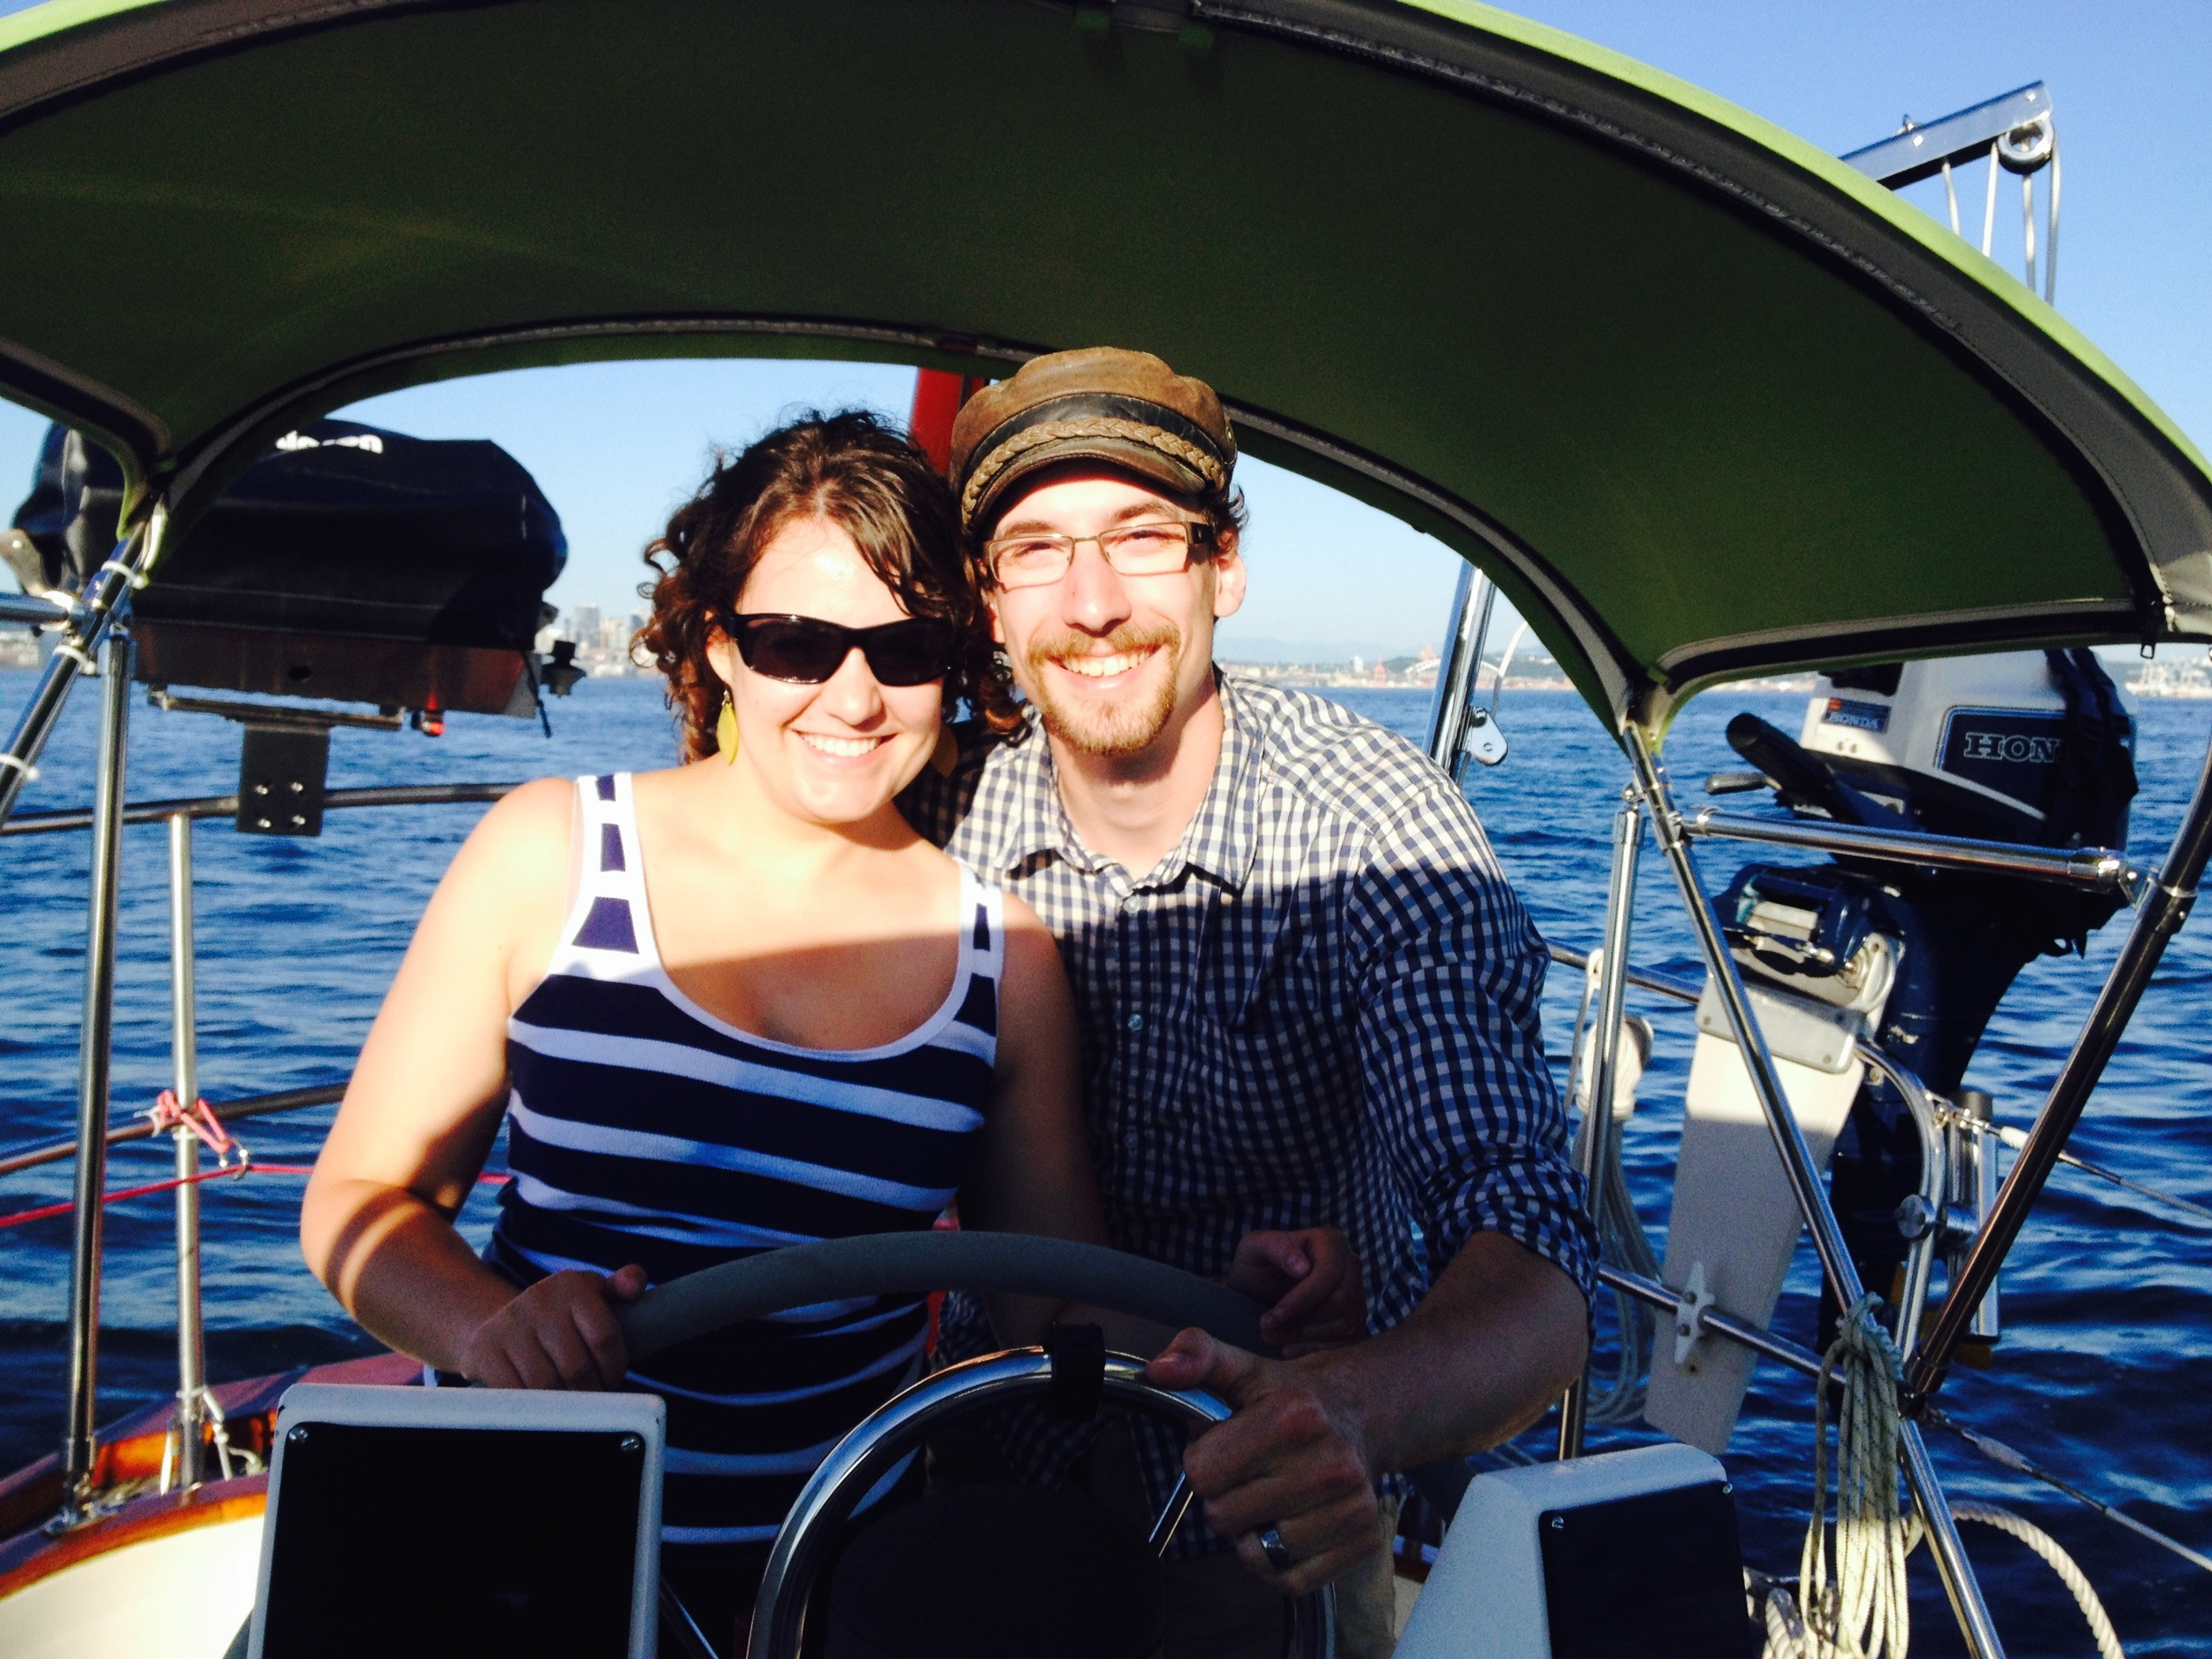 Lora and Chris on their Sunset Sail